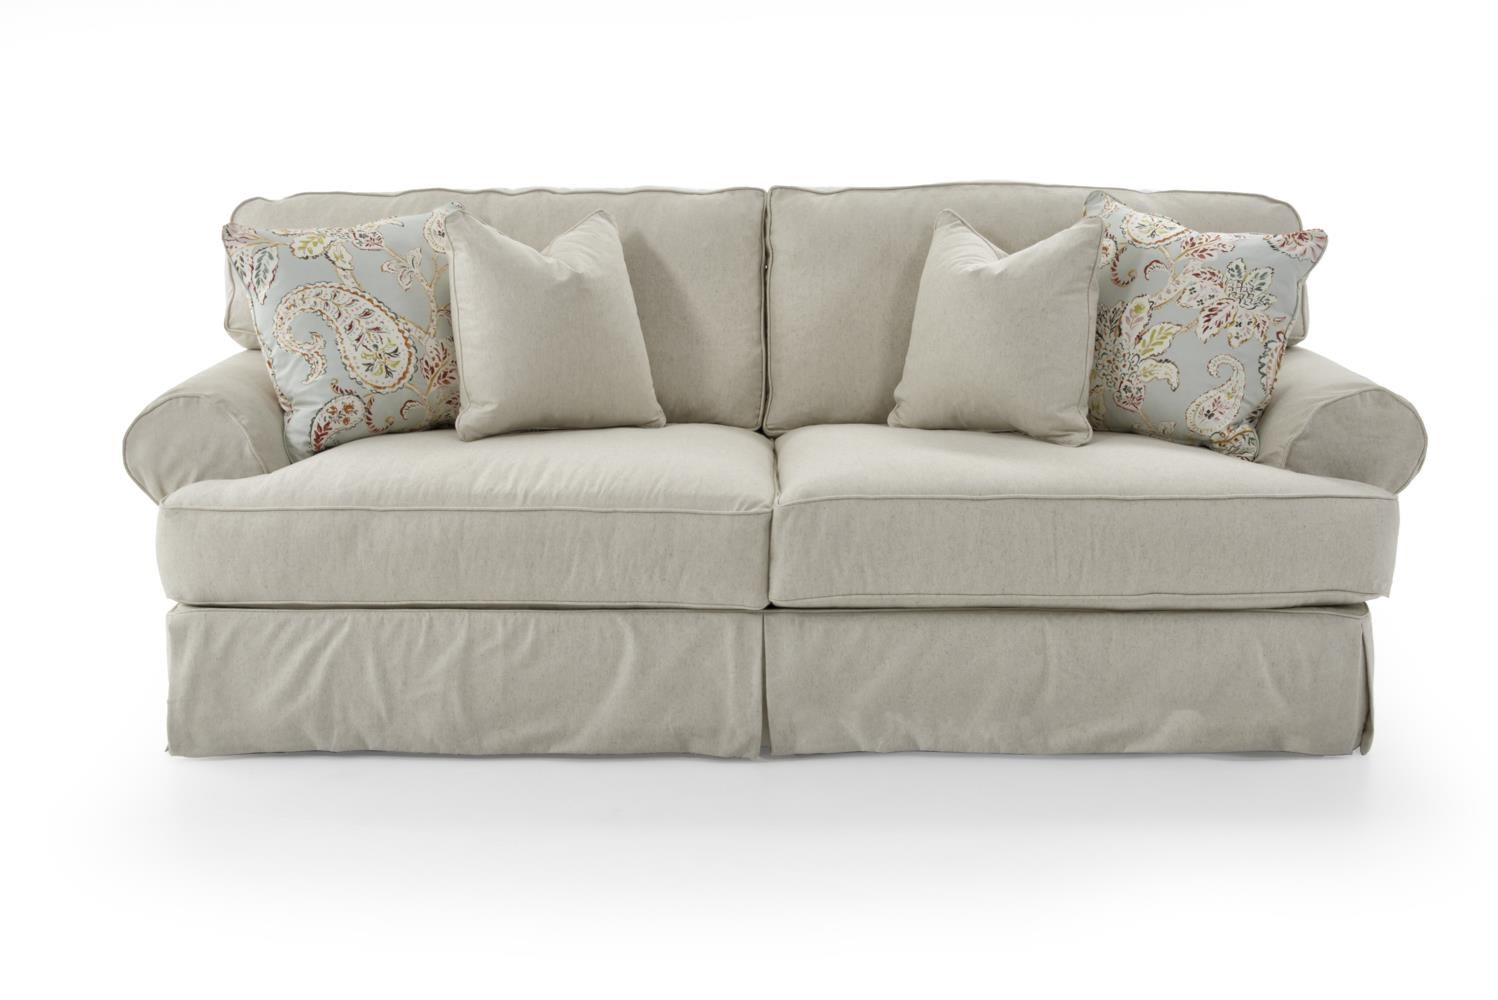 Addison  Traditional 2 Seat Sofa With Slipcover by Rowe at Baer's Furniture